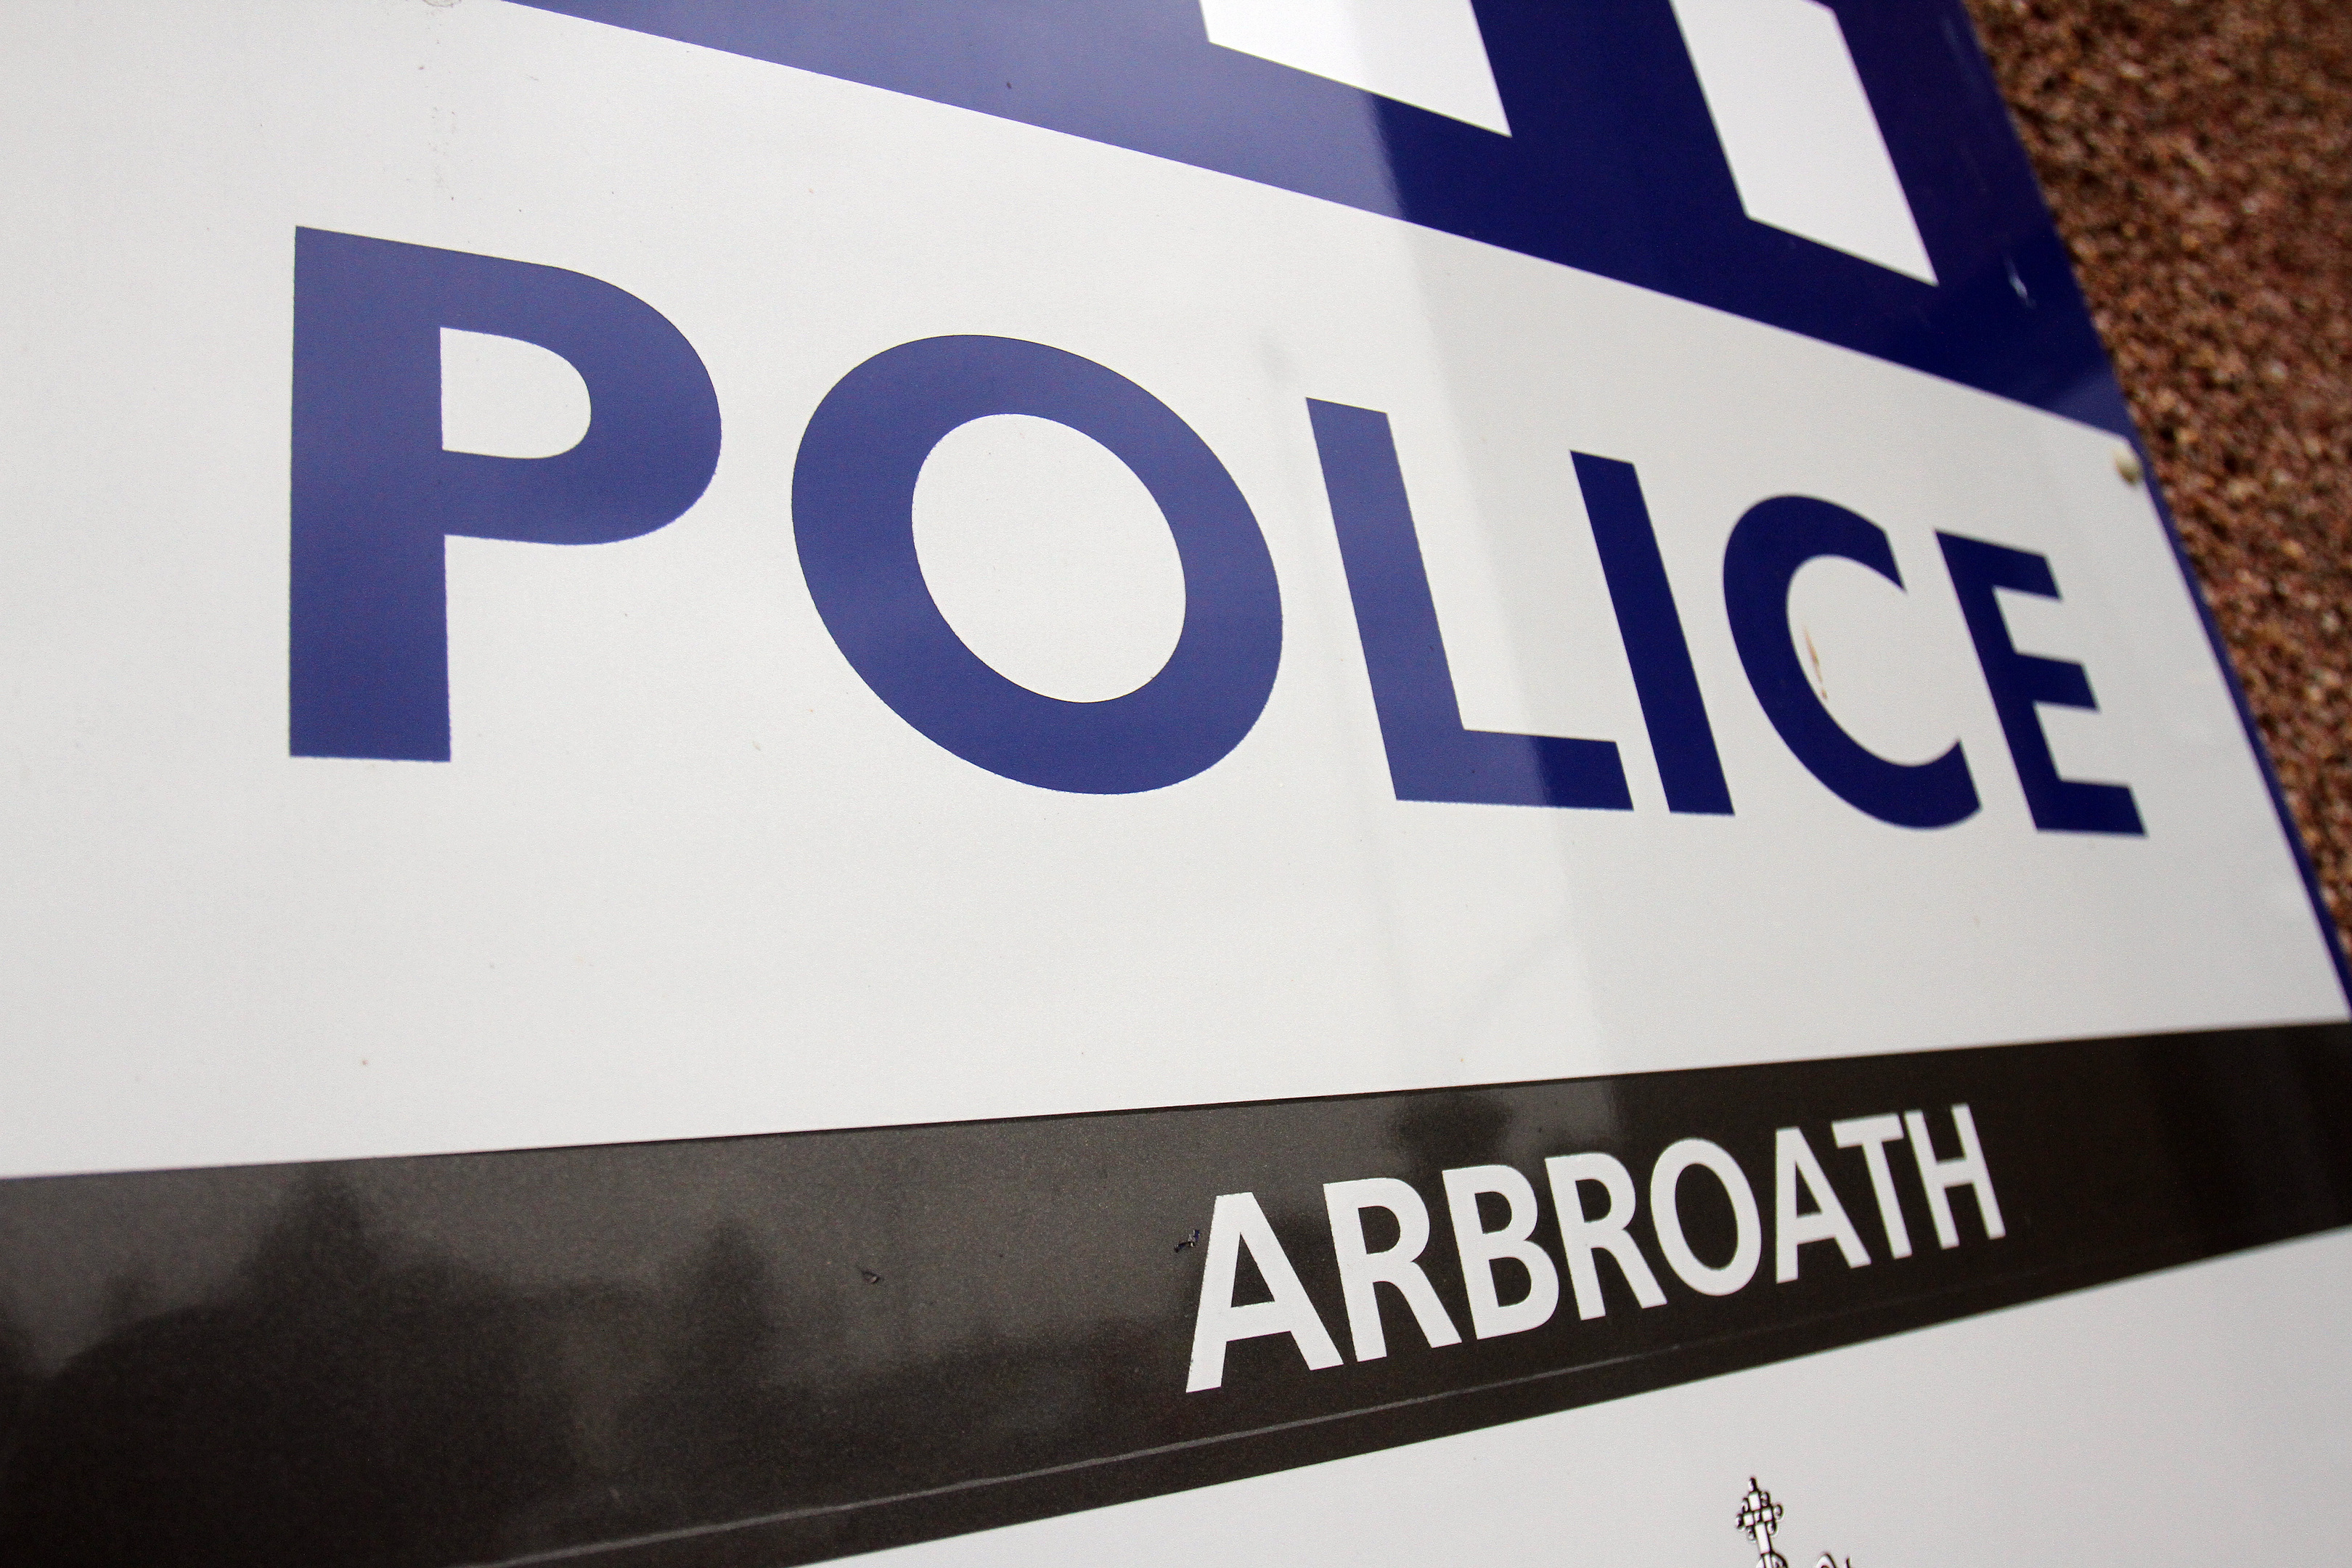 The incident happened at Arbroath Police Station.